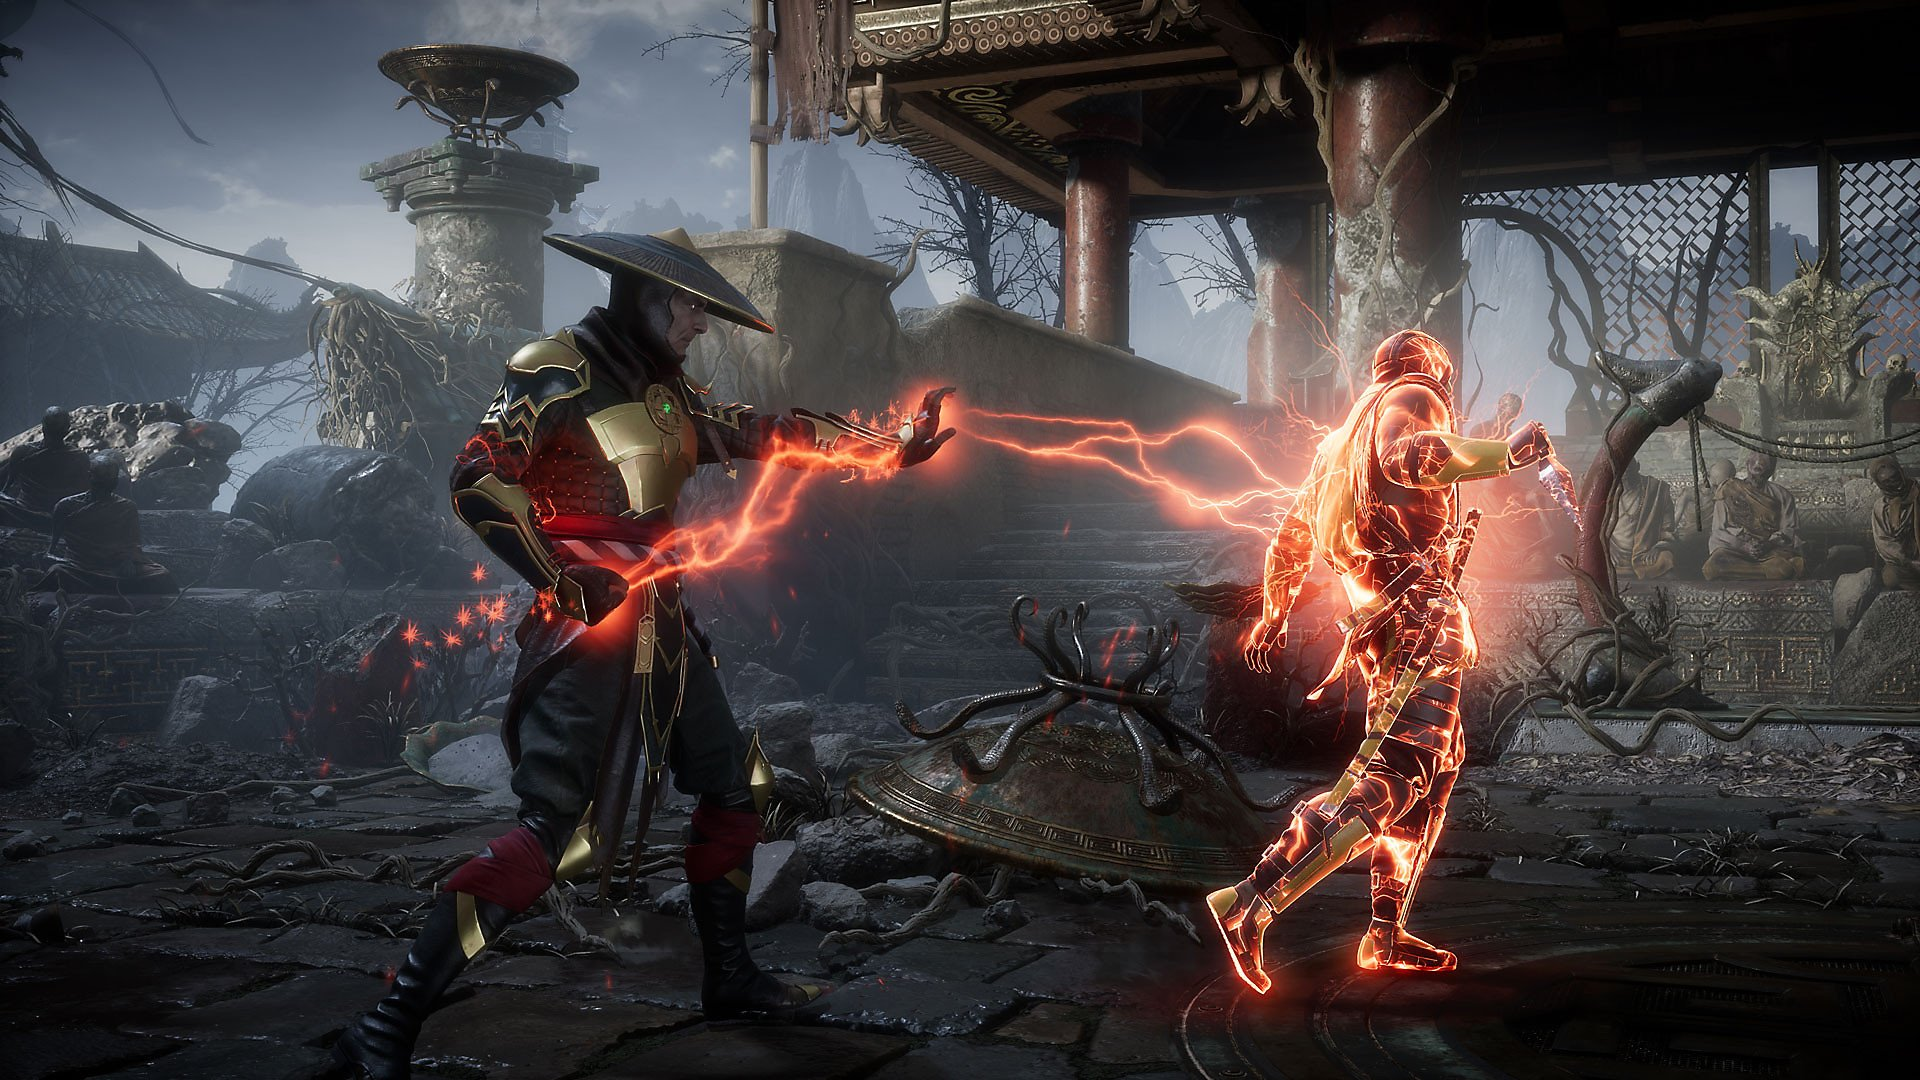 How to get more Skip Fight Tokens fast in Mortal Kombat 11